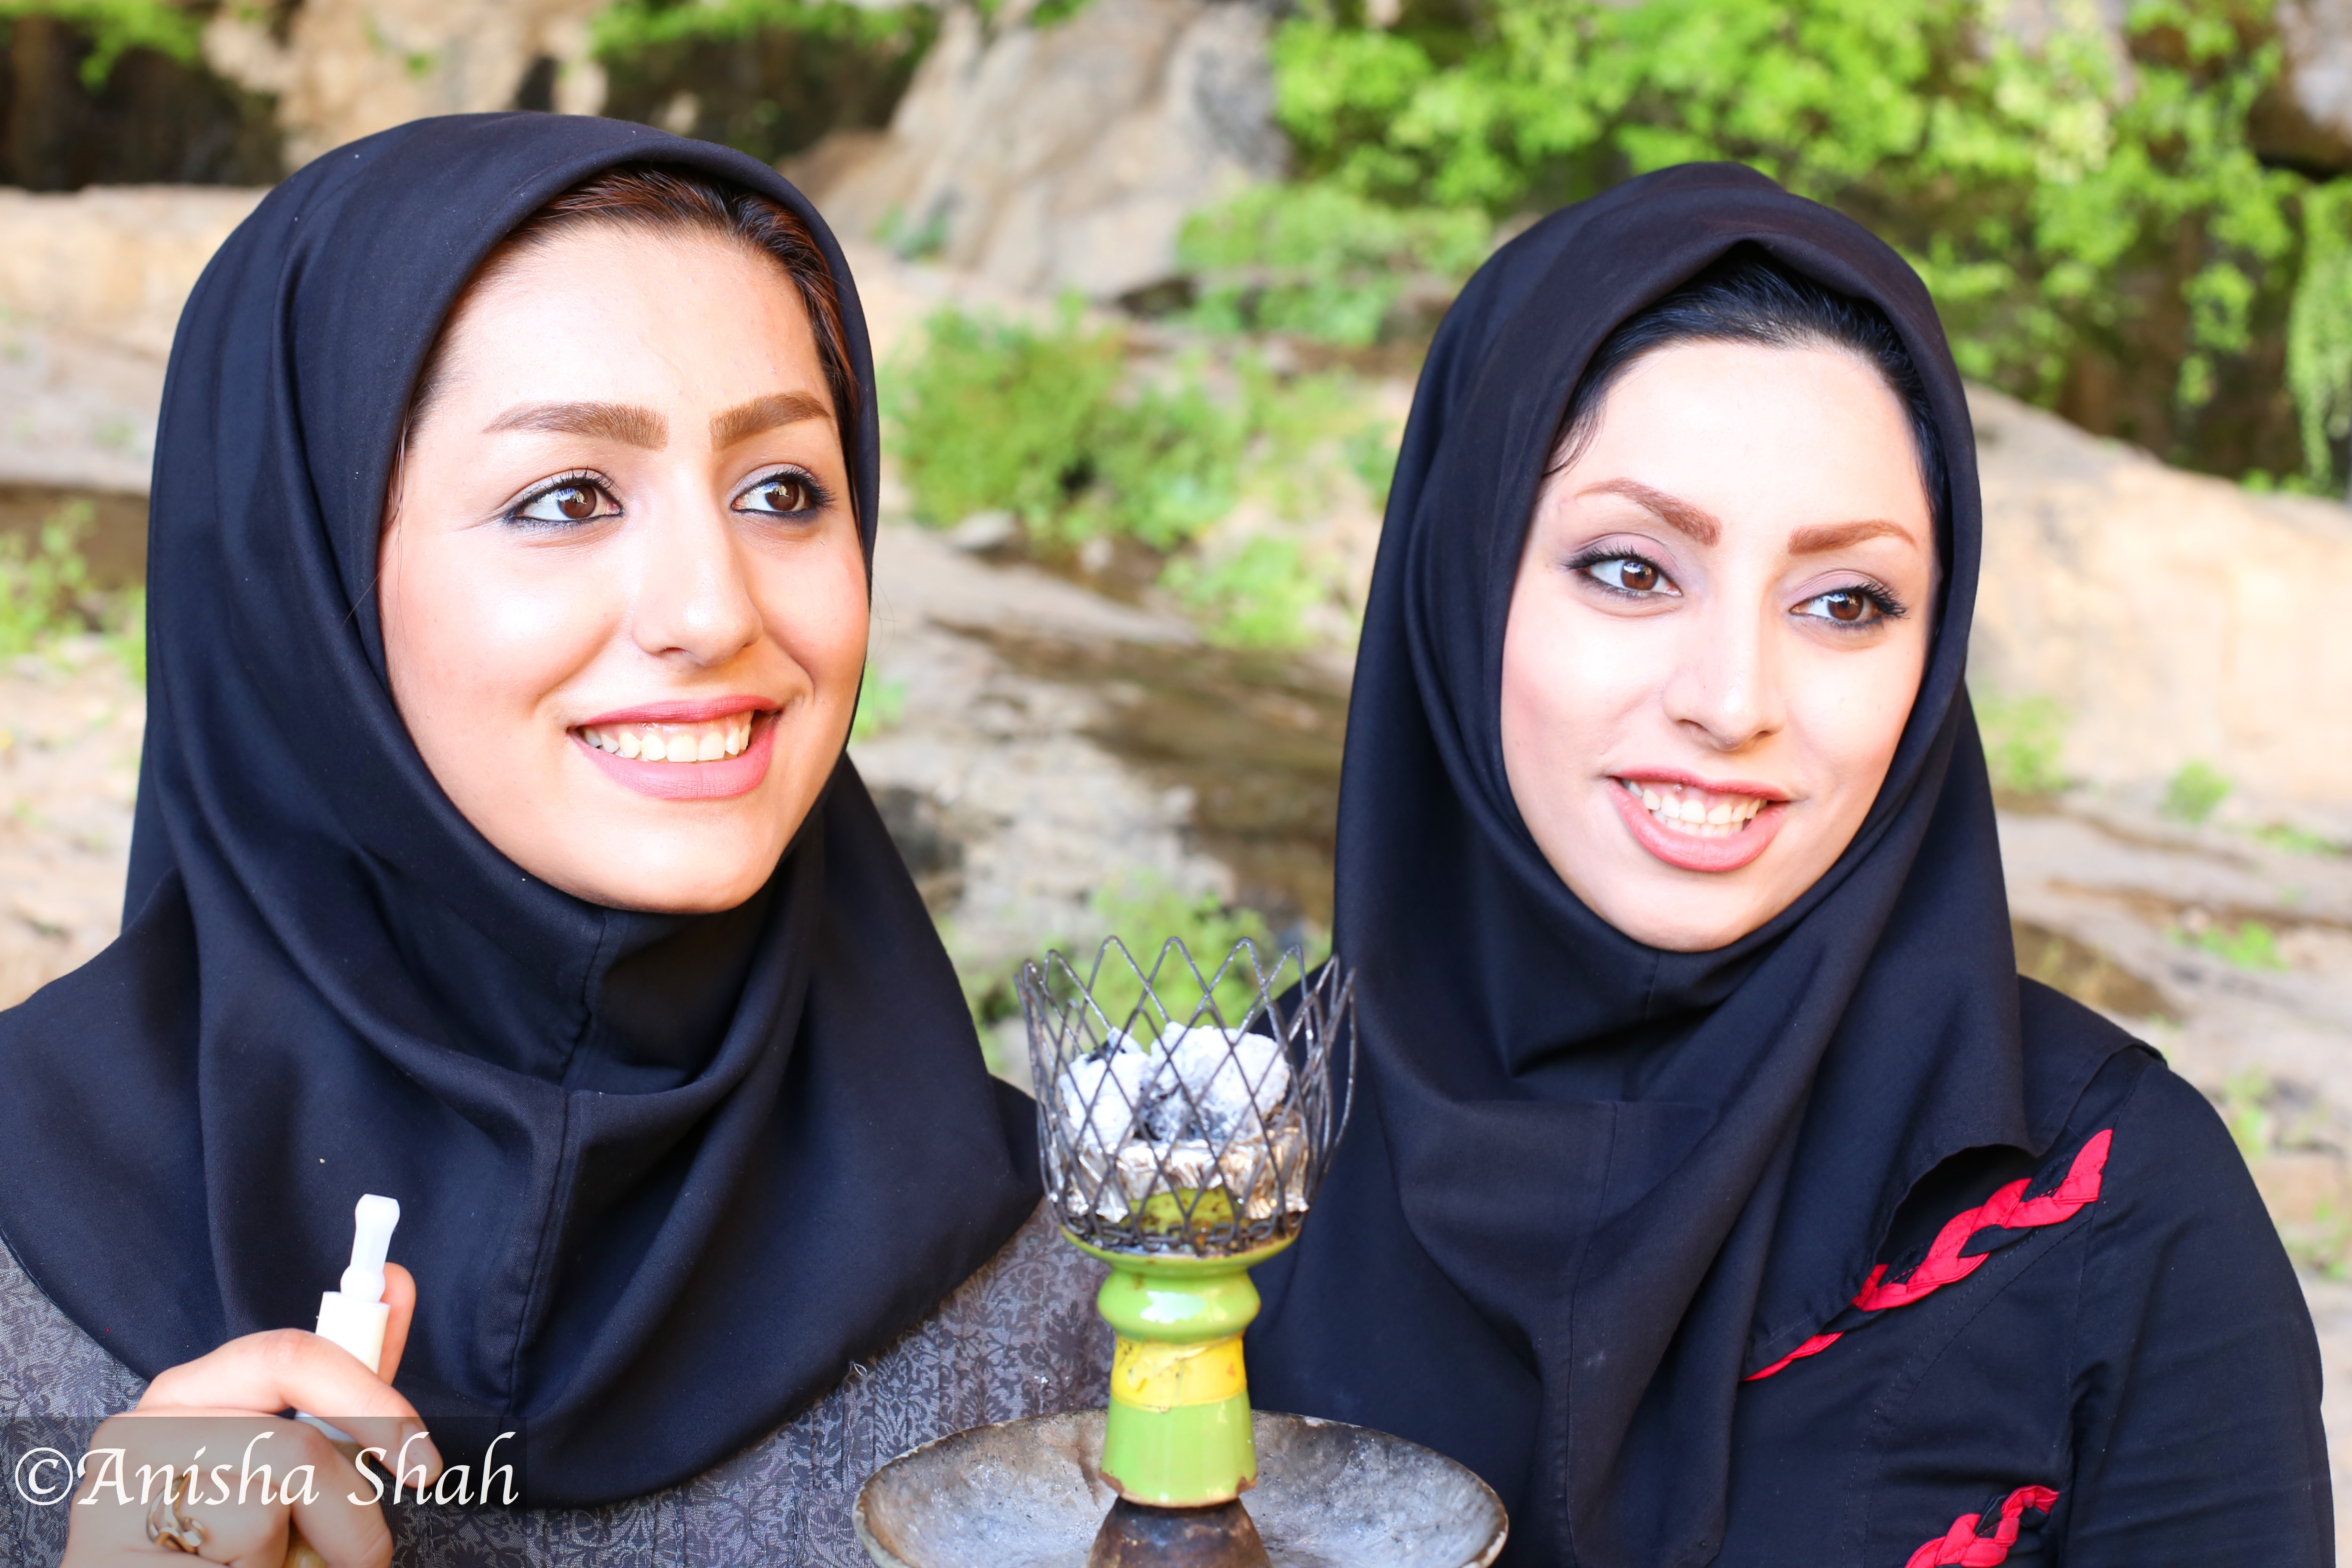 middle eastern single women in cross city Middle eastern city crossword puzzle clue has 1 possible answer and appears in 1 publication.